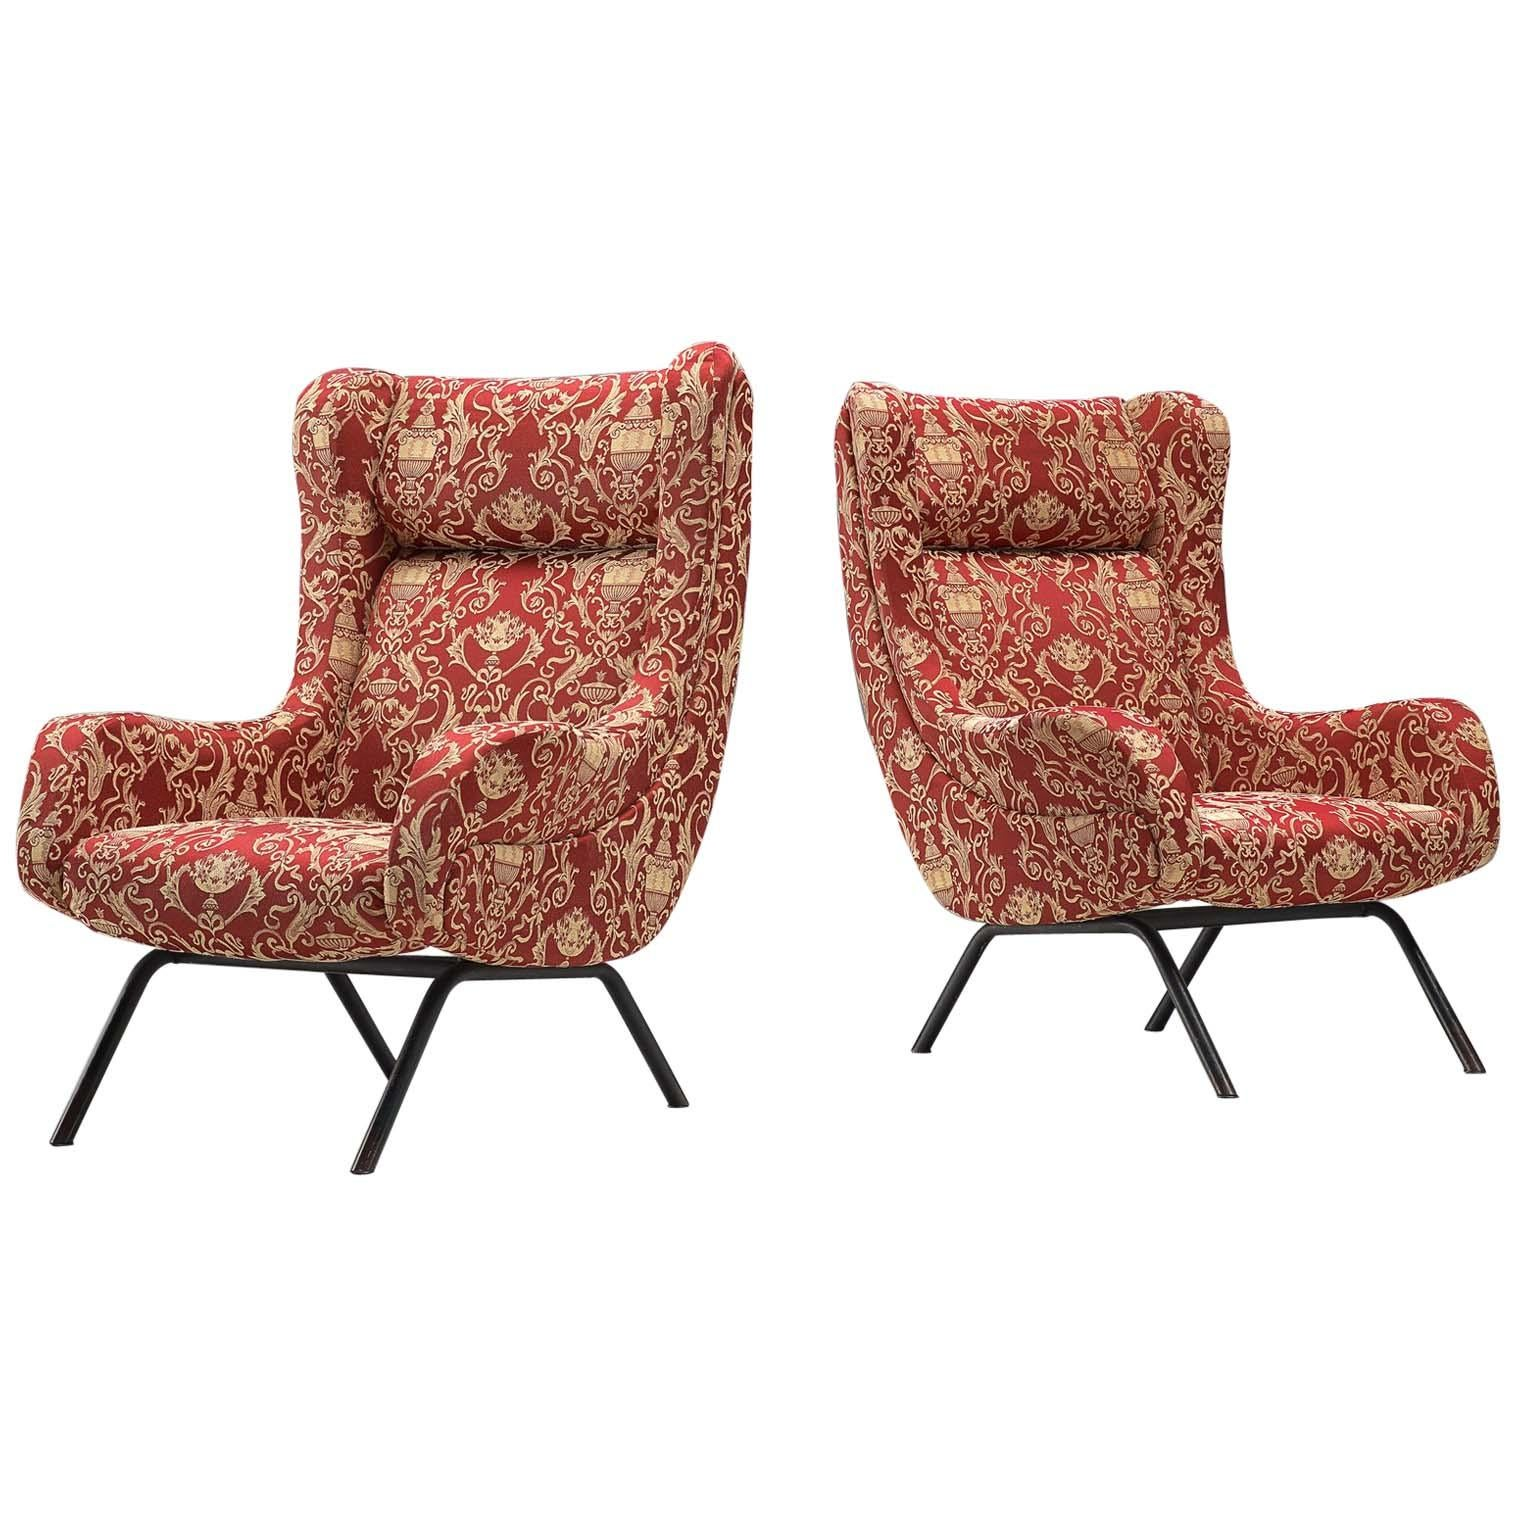 Two Italian Lounge Chairs In Baroque Patterned Fabric For Sale